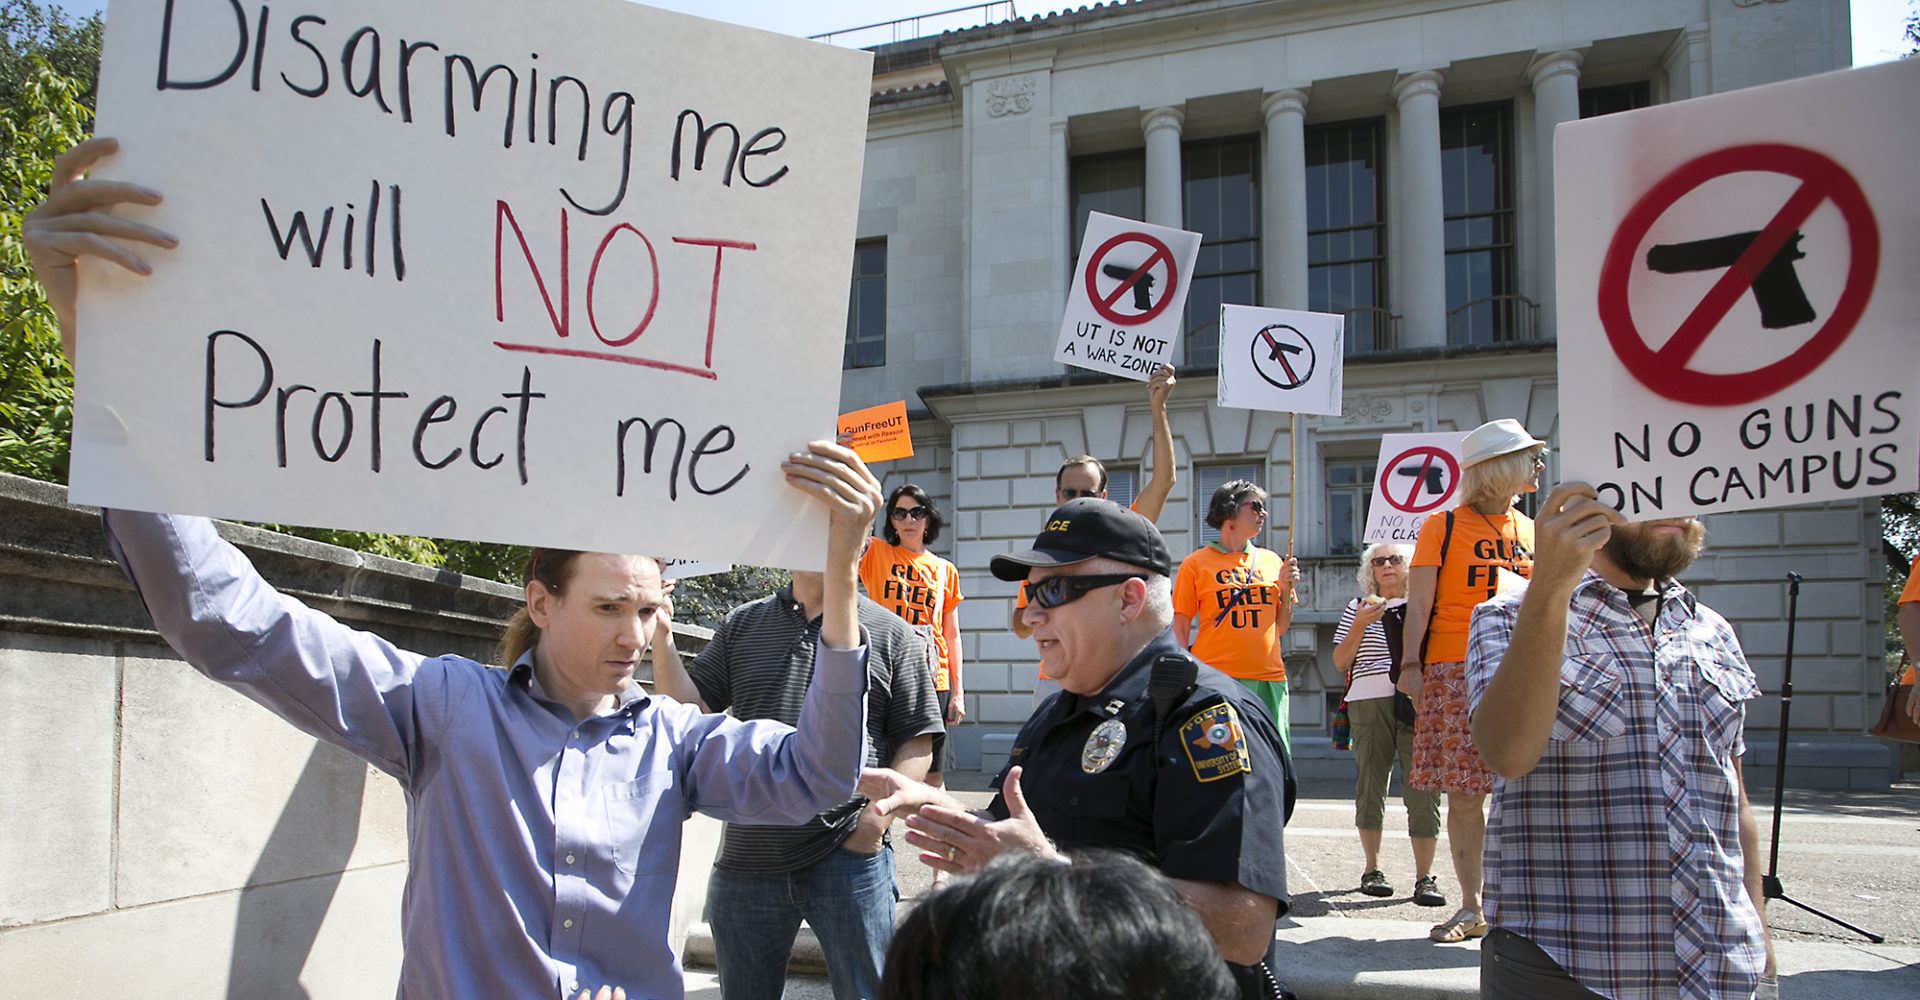 guns on campus 2 The federal school safety panel, created after the marjory stoneman douglas shooting, will not look into best practices of foreign nations with significantly lower rates of gun violence.